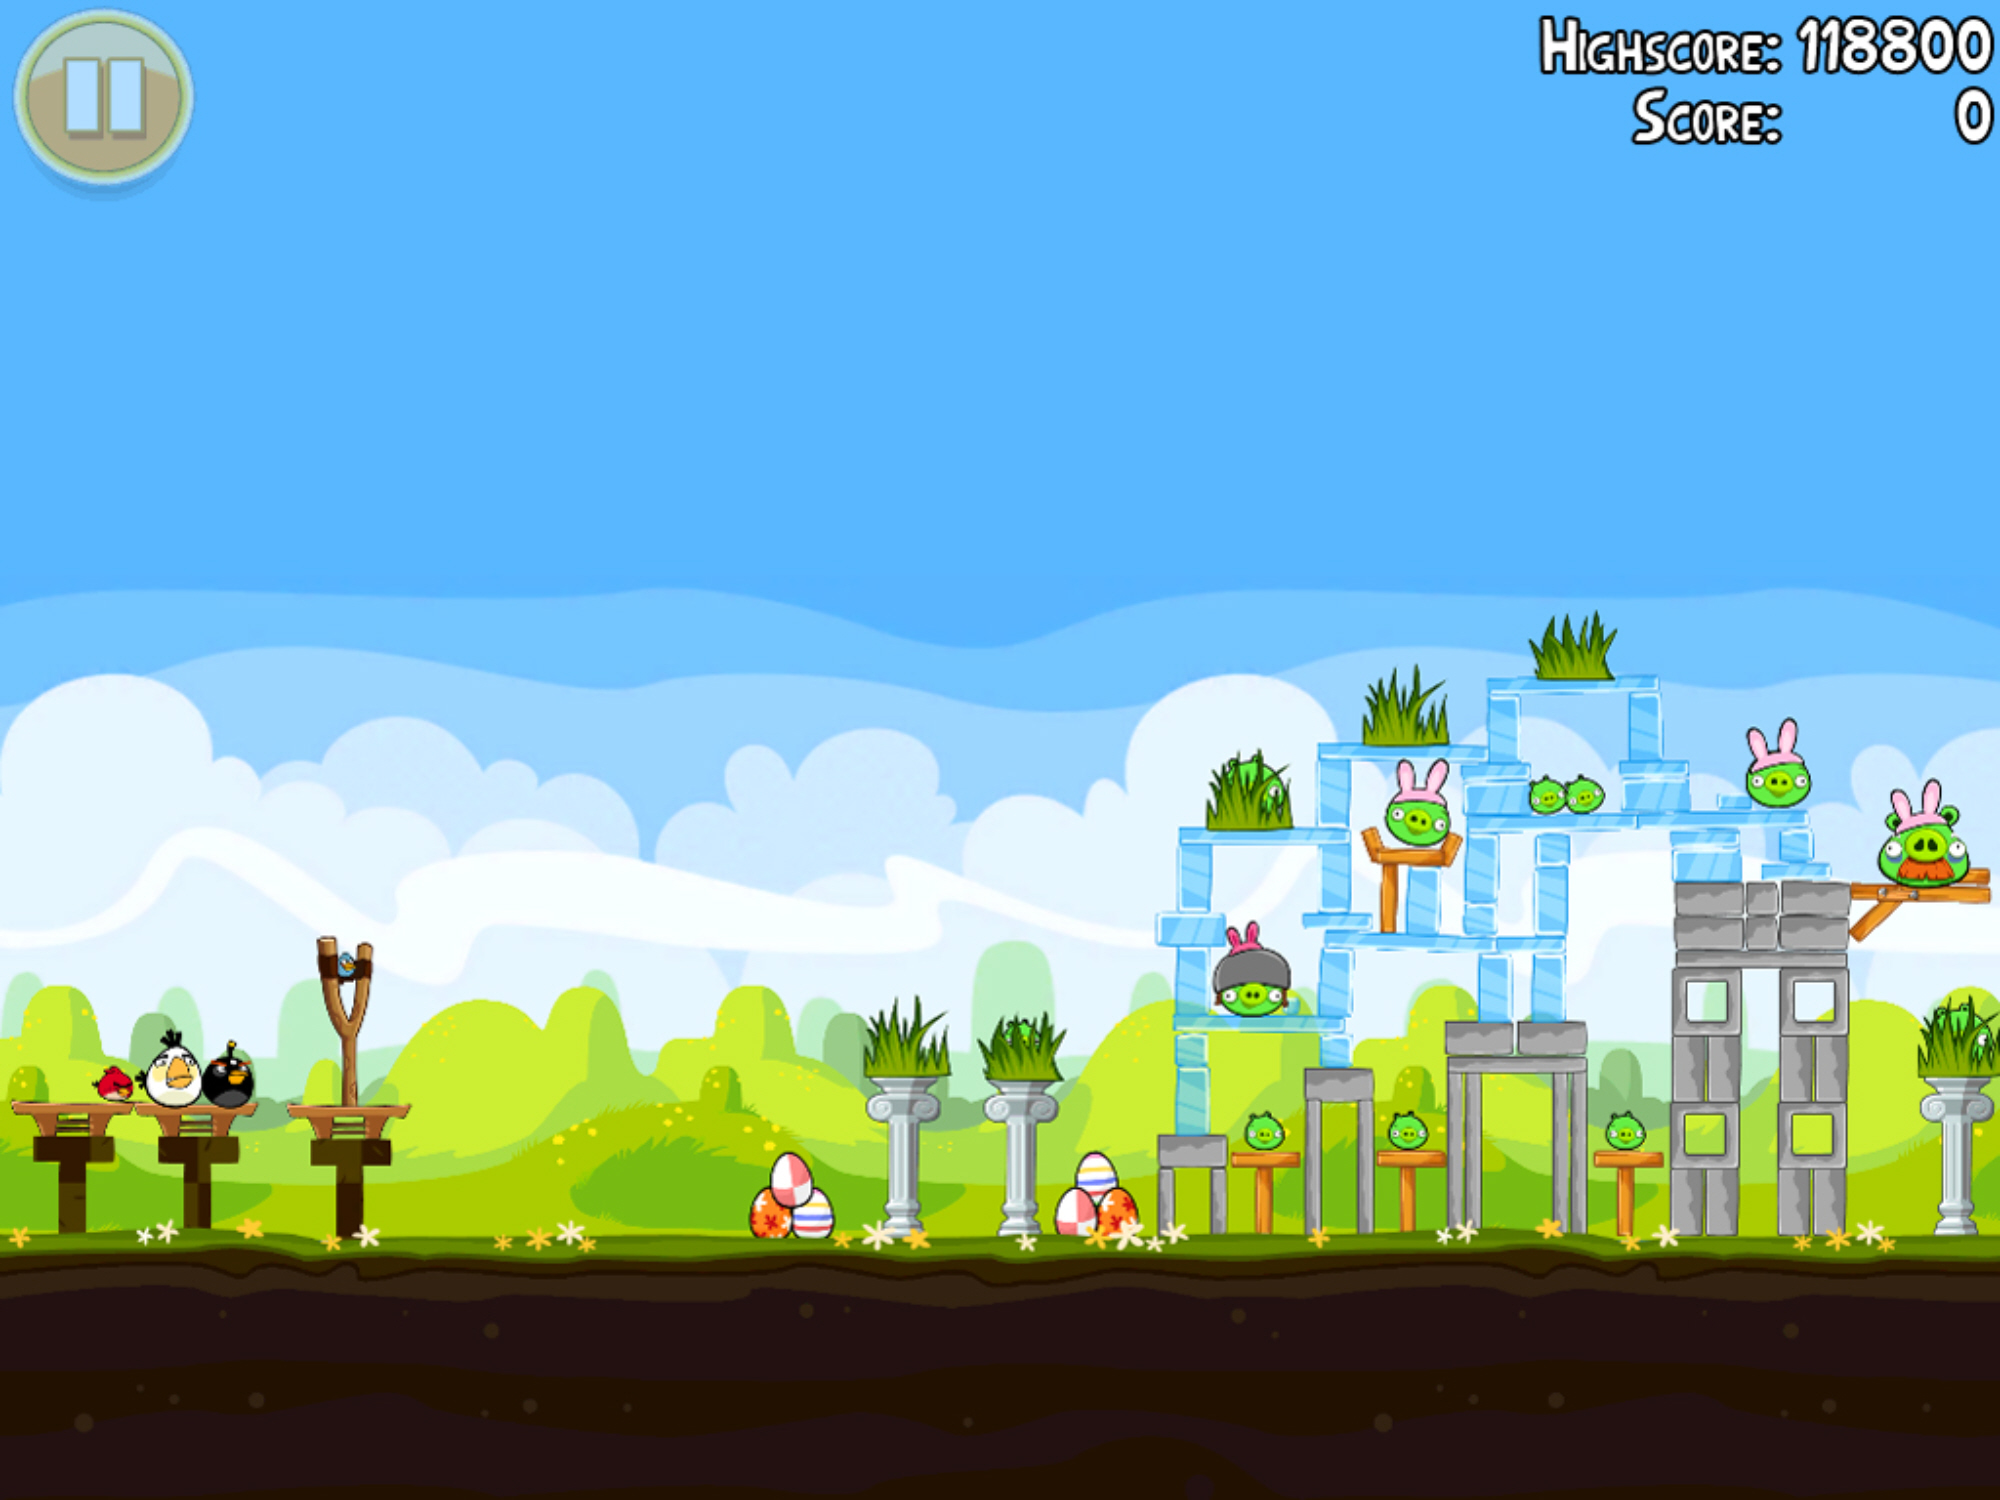 angry-birds-easter-update-announced-with-screens-s-ios-android-609239.jpg